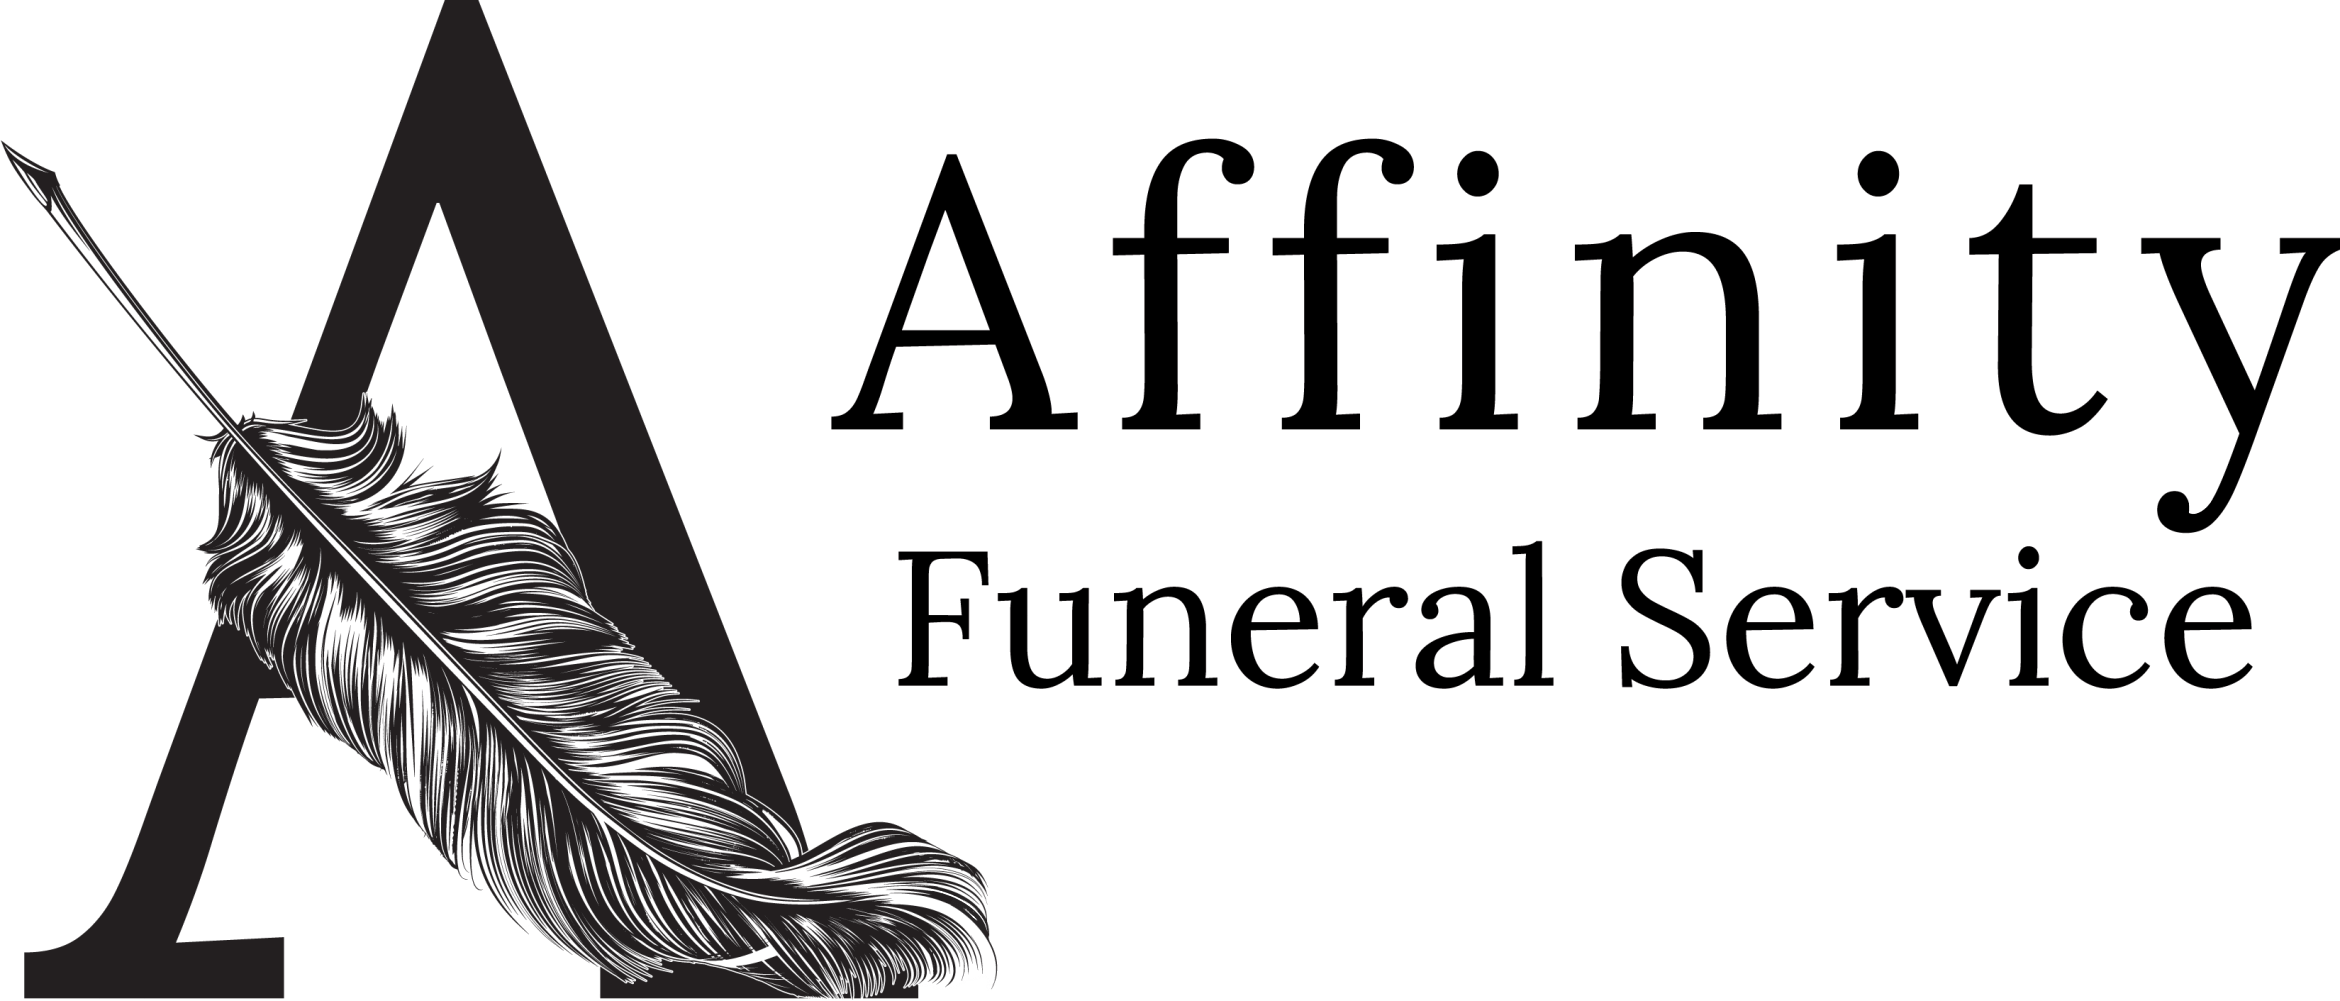 Drayton Valley Funeral Services